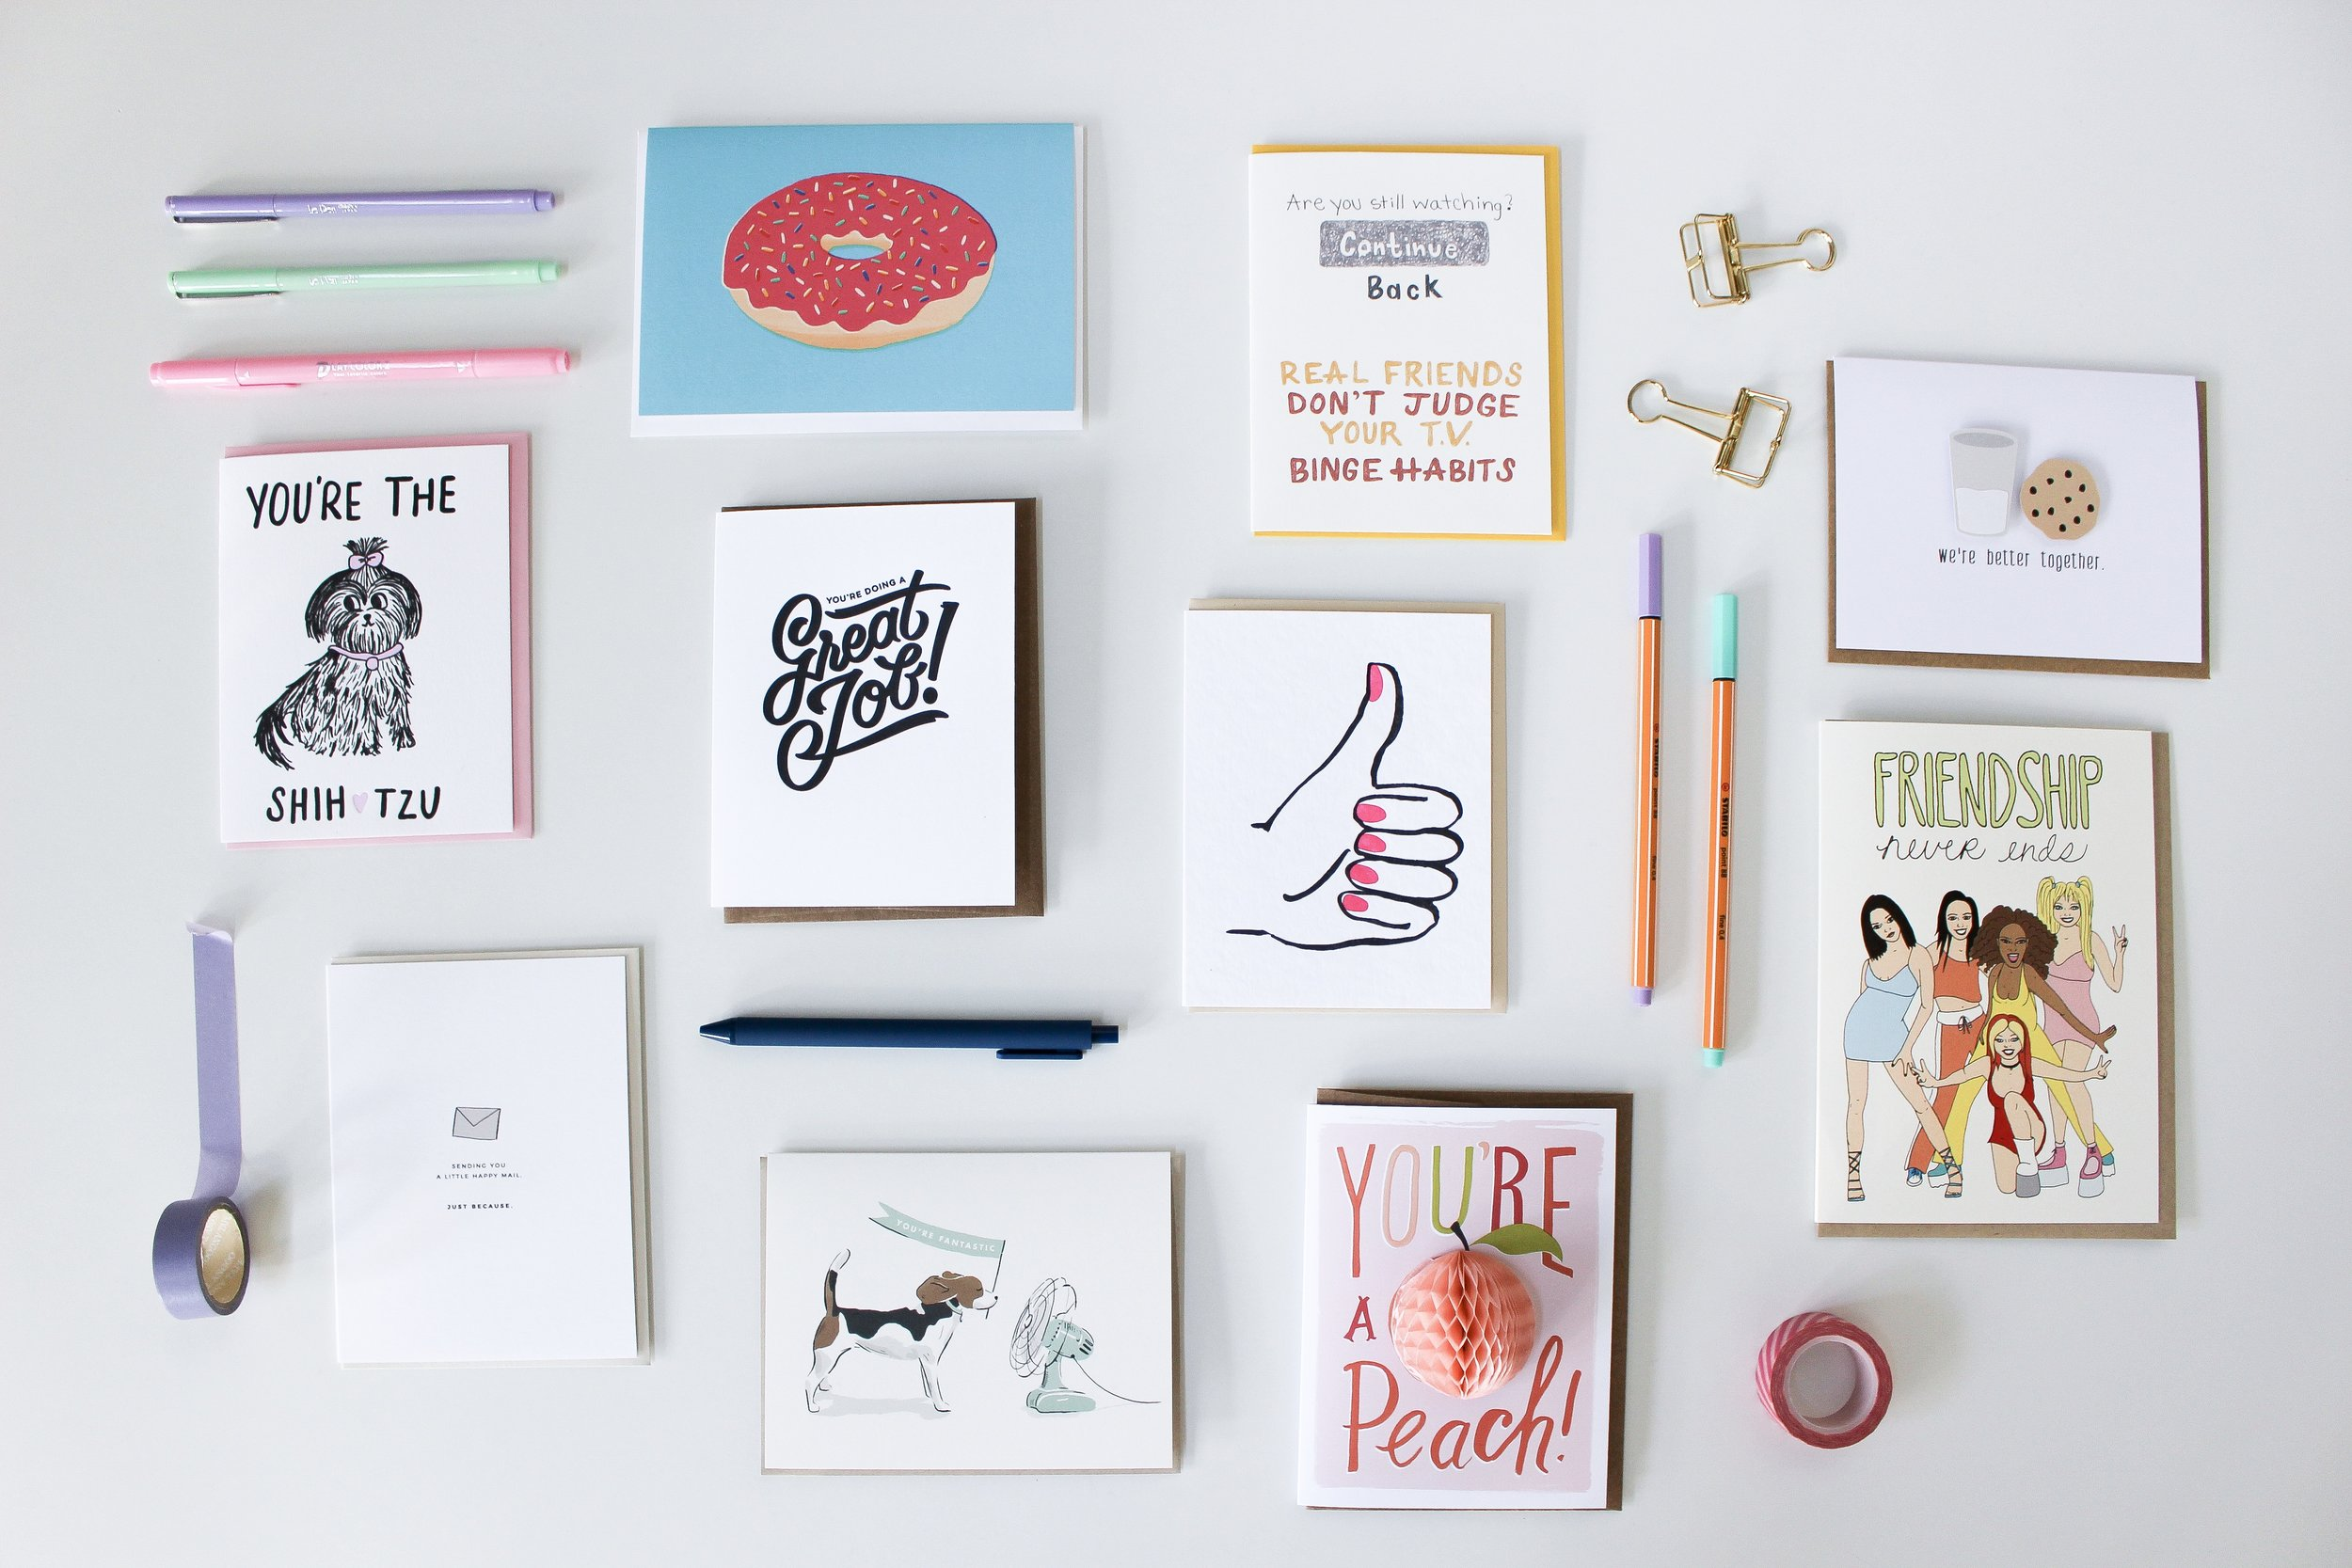 The Paper + Craft Pantry Blog: Overview of all the cards and a few pens laying flat on the table.